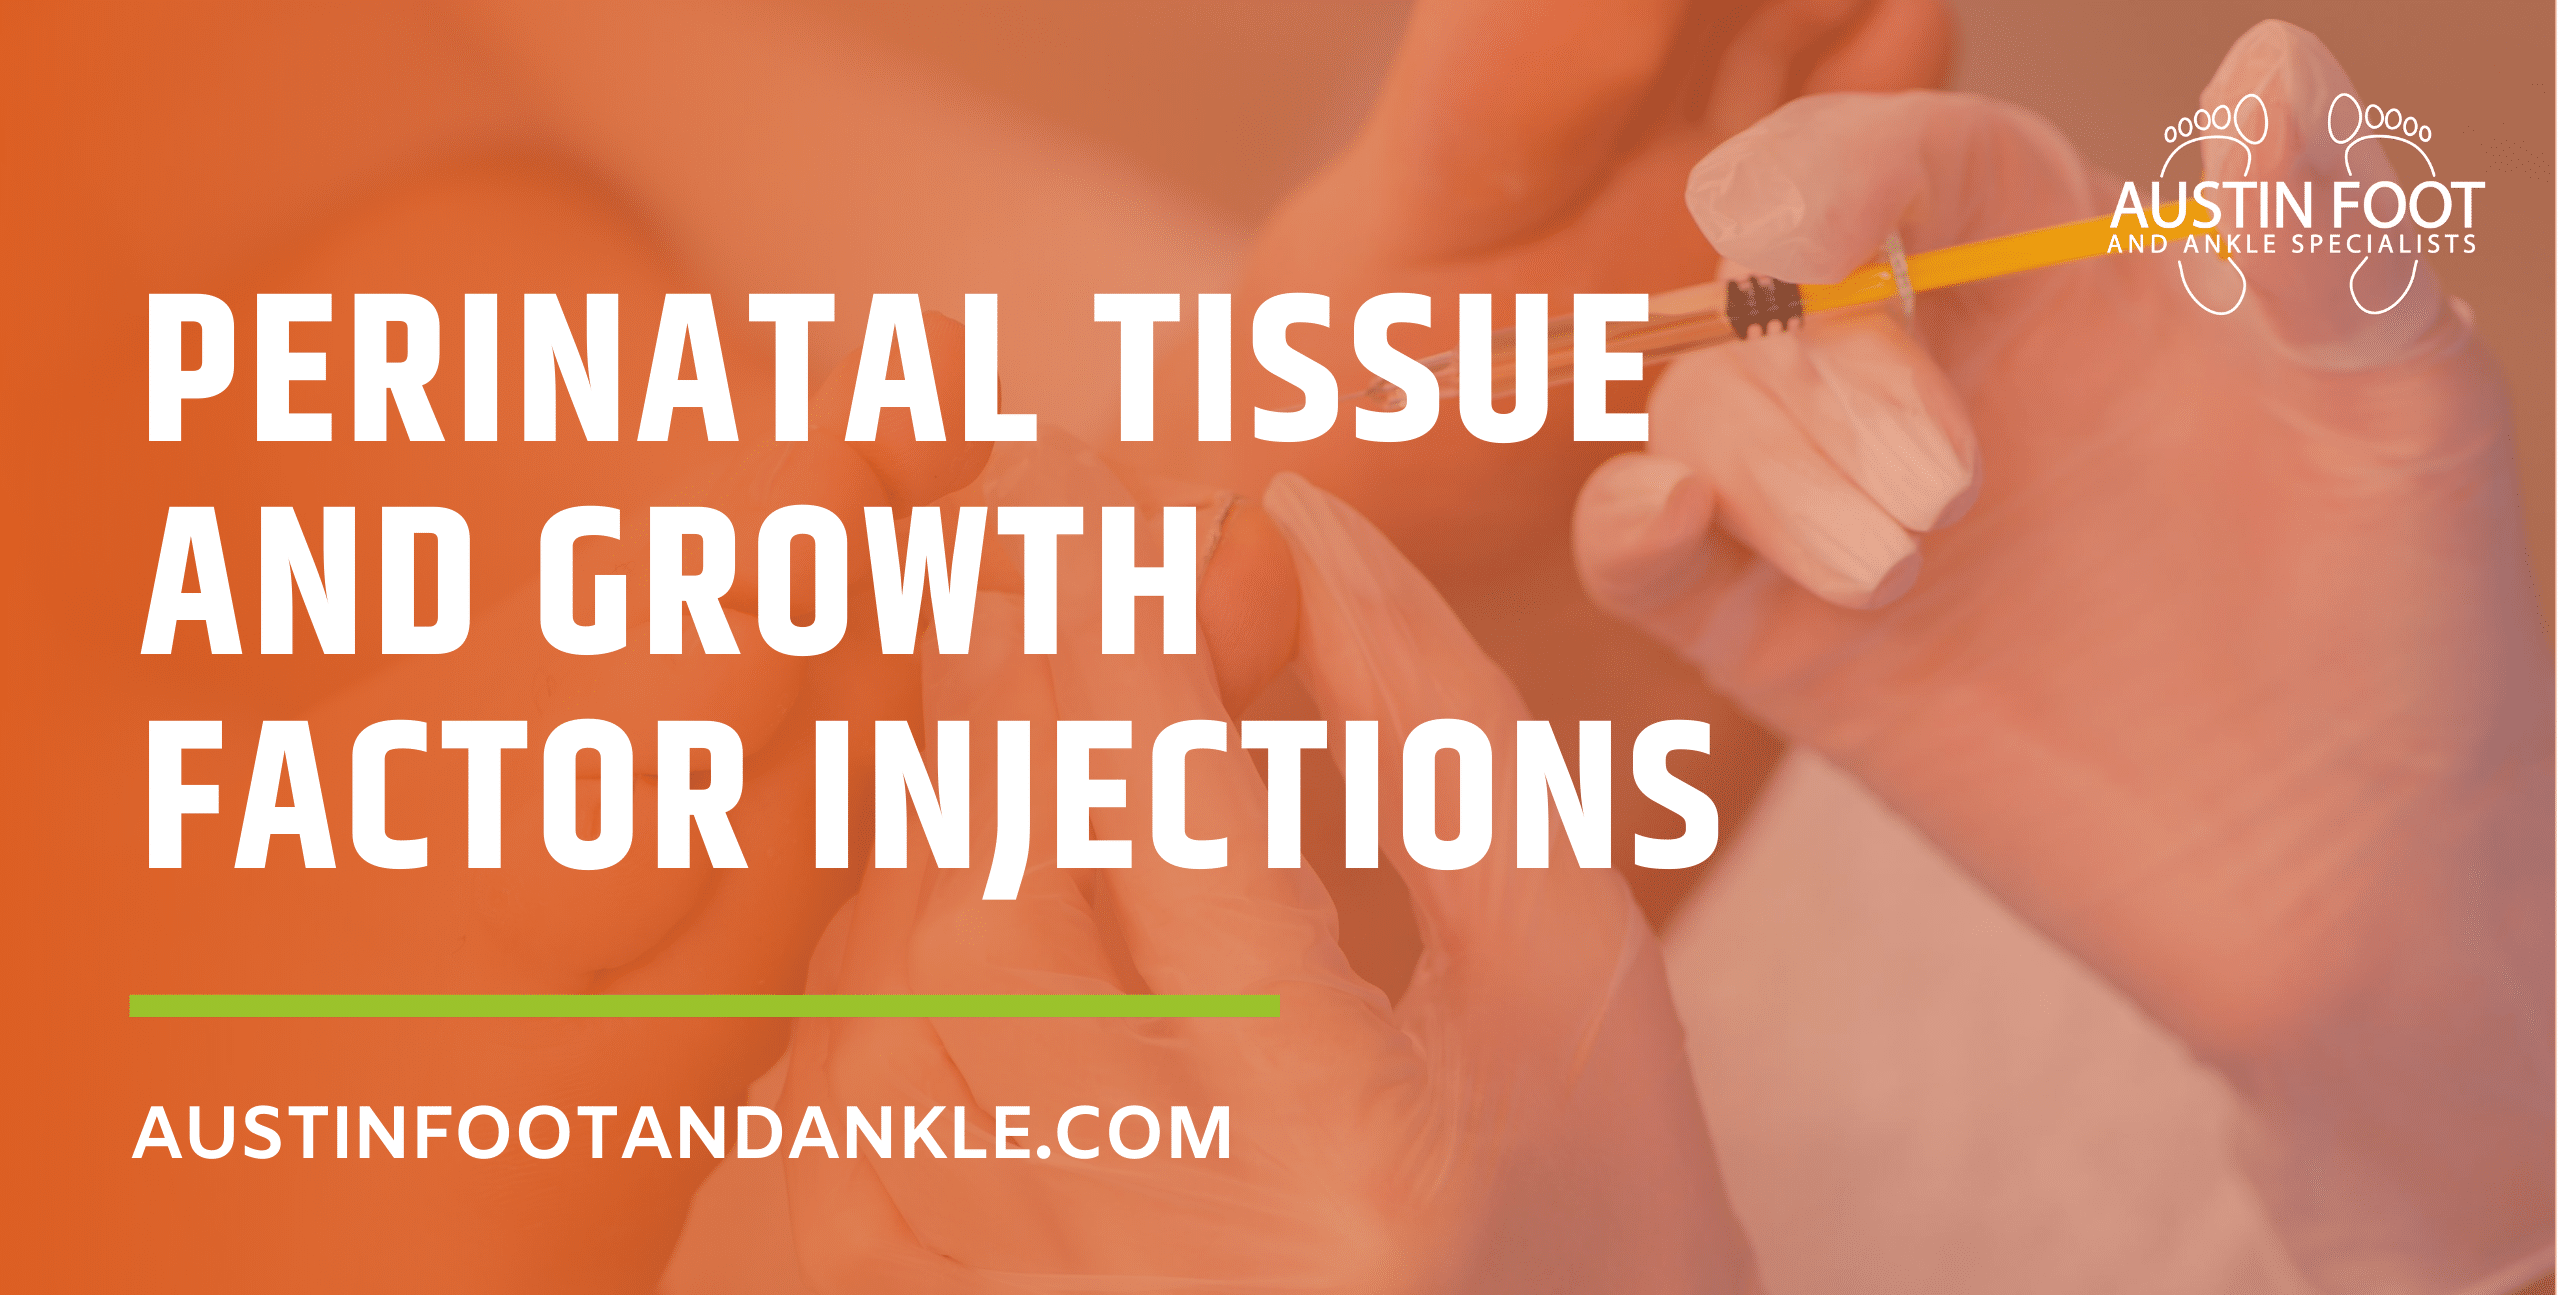 Perinatal Tissue and Growth Factor Injections